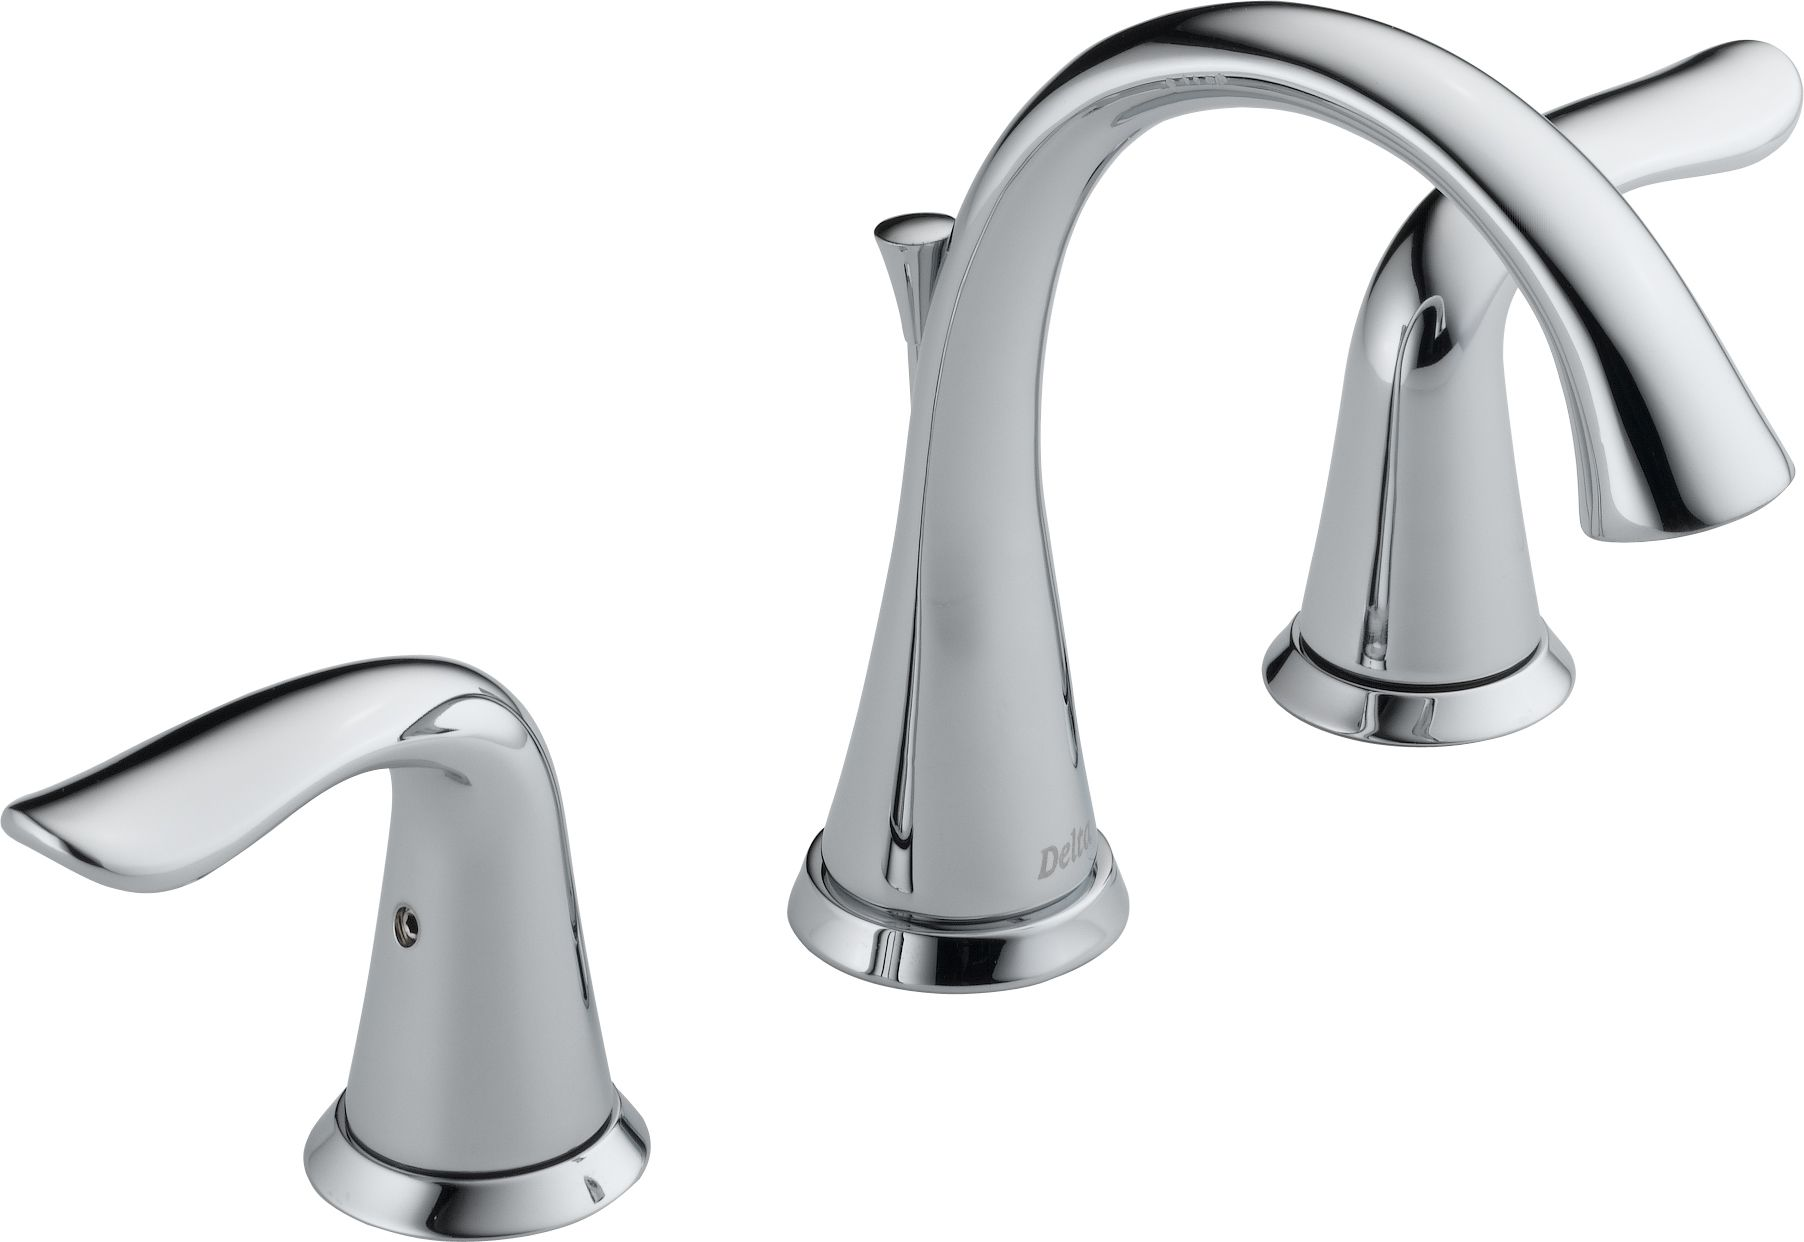 Delta 3538 Mpu Dst Chrome Lahara Widespread Bathroom Faucet With Pop